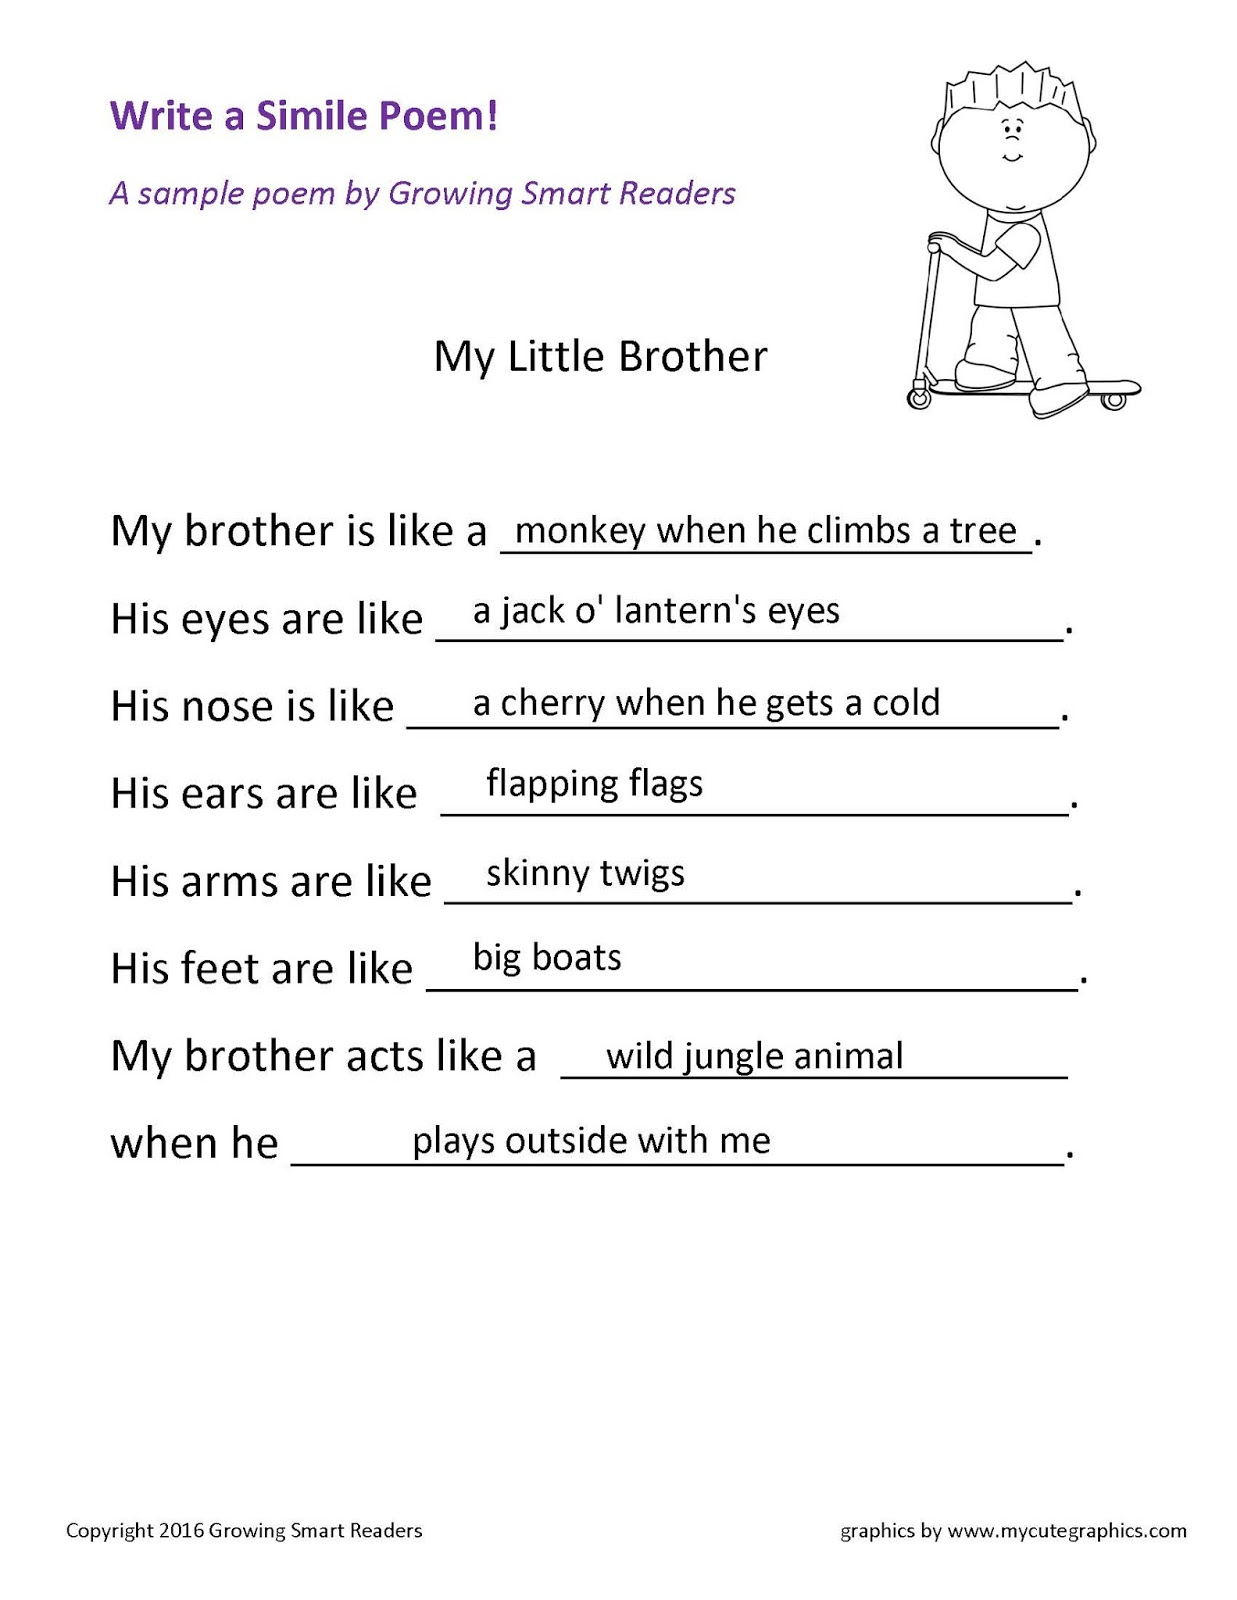 Growing Smart Readers Write A Simile Poem Free Download